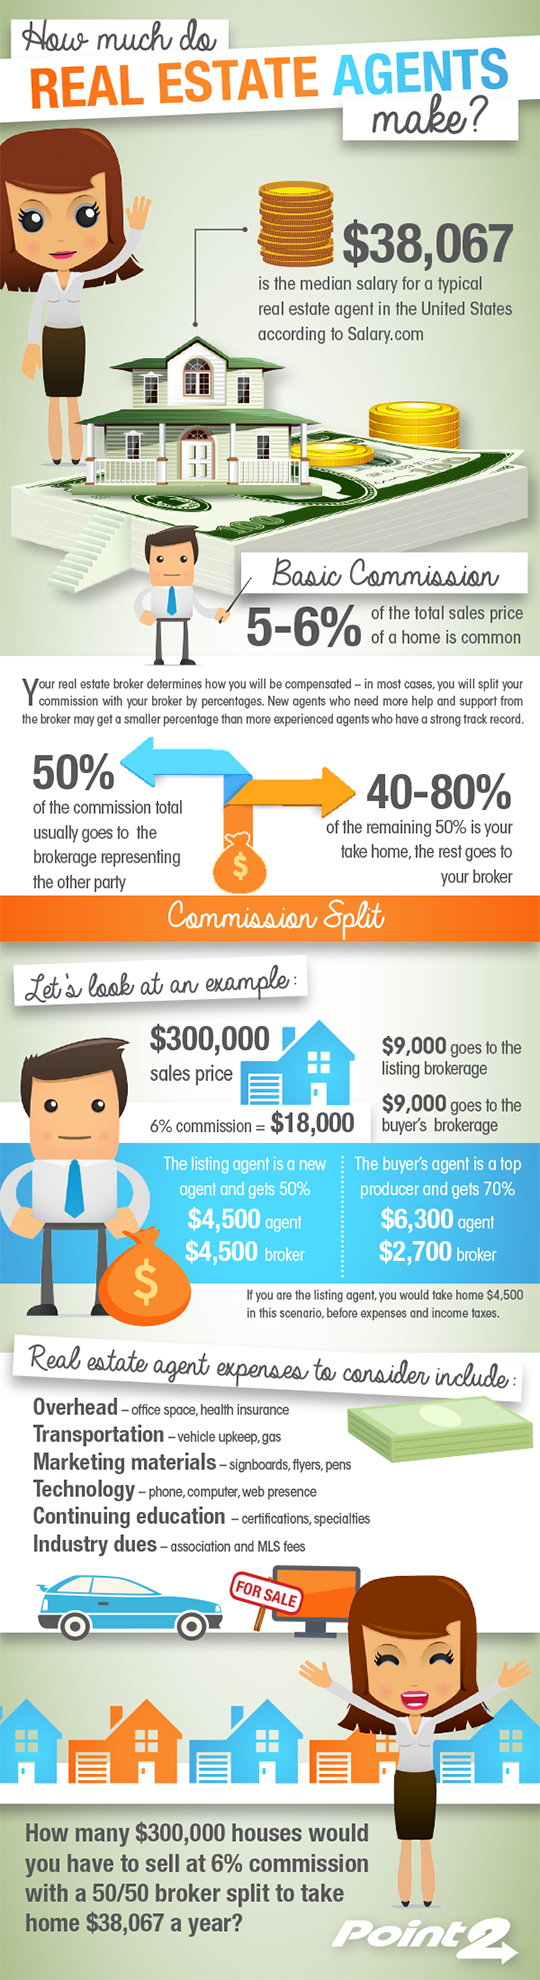 How Much Do Agents Make How Much Do Real Estate Agents Make?